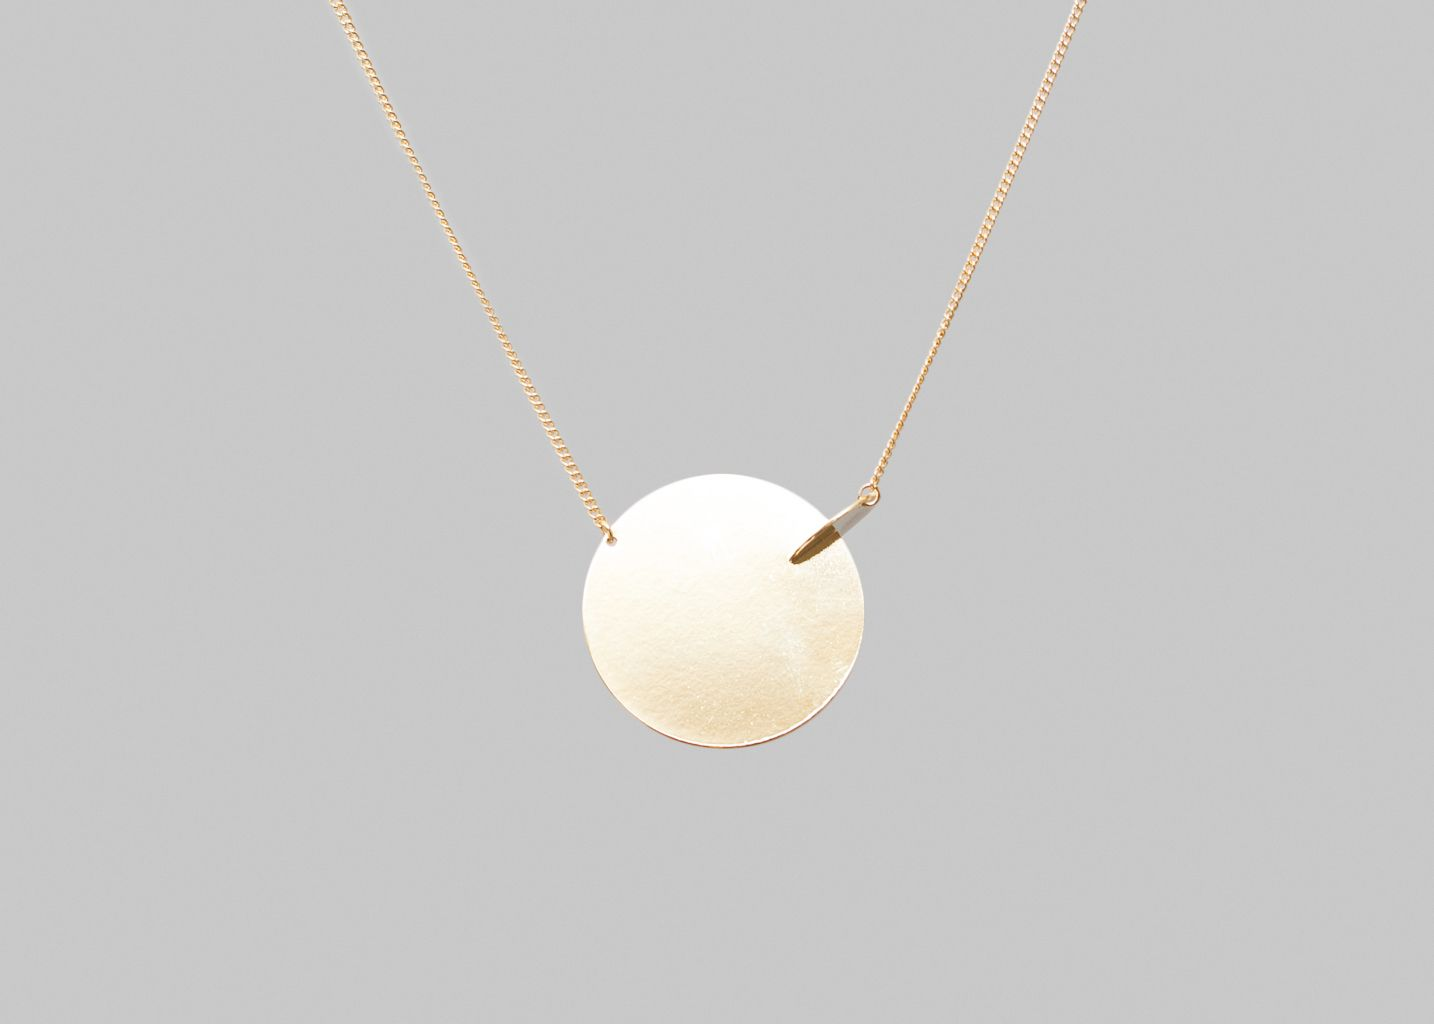 Collier Assembly Rond 3D - Anne Thomas Bijoux